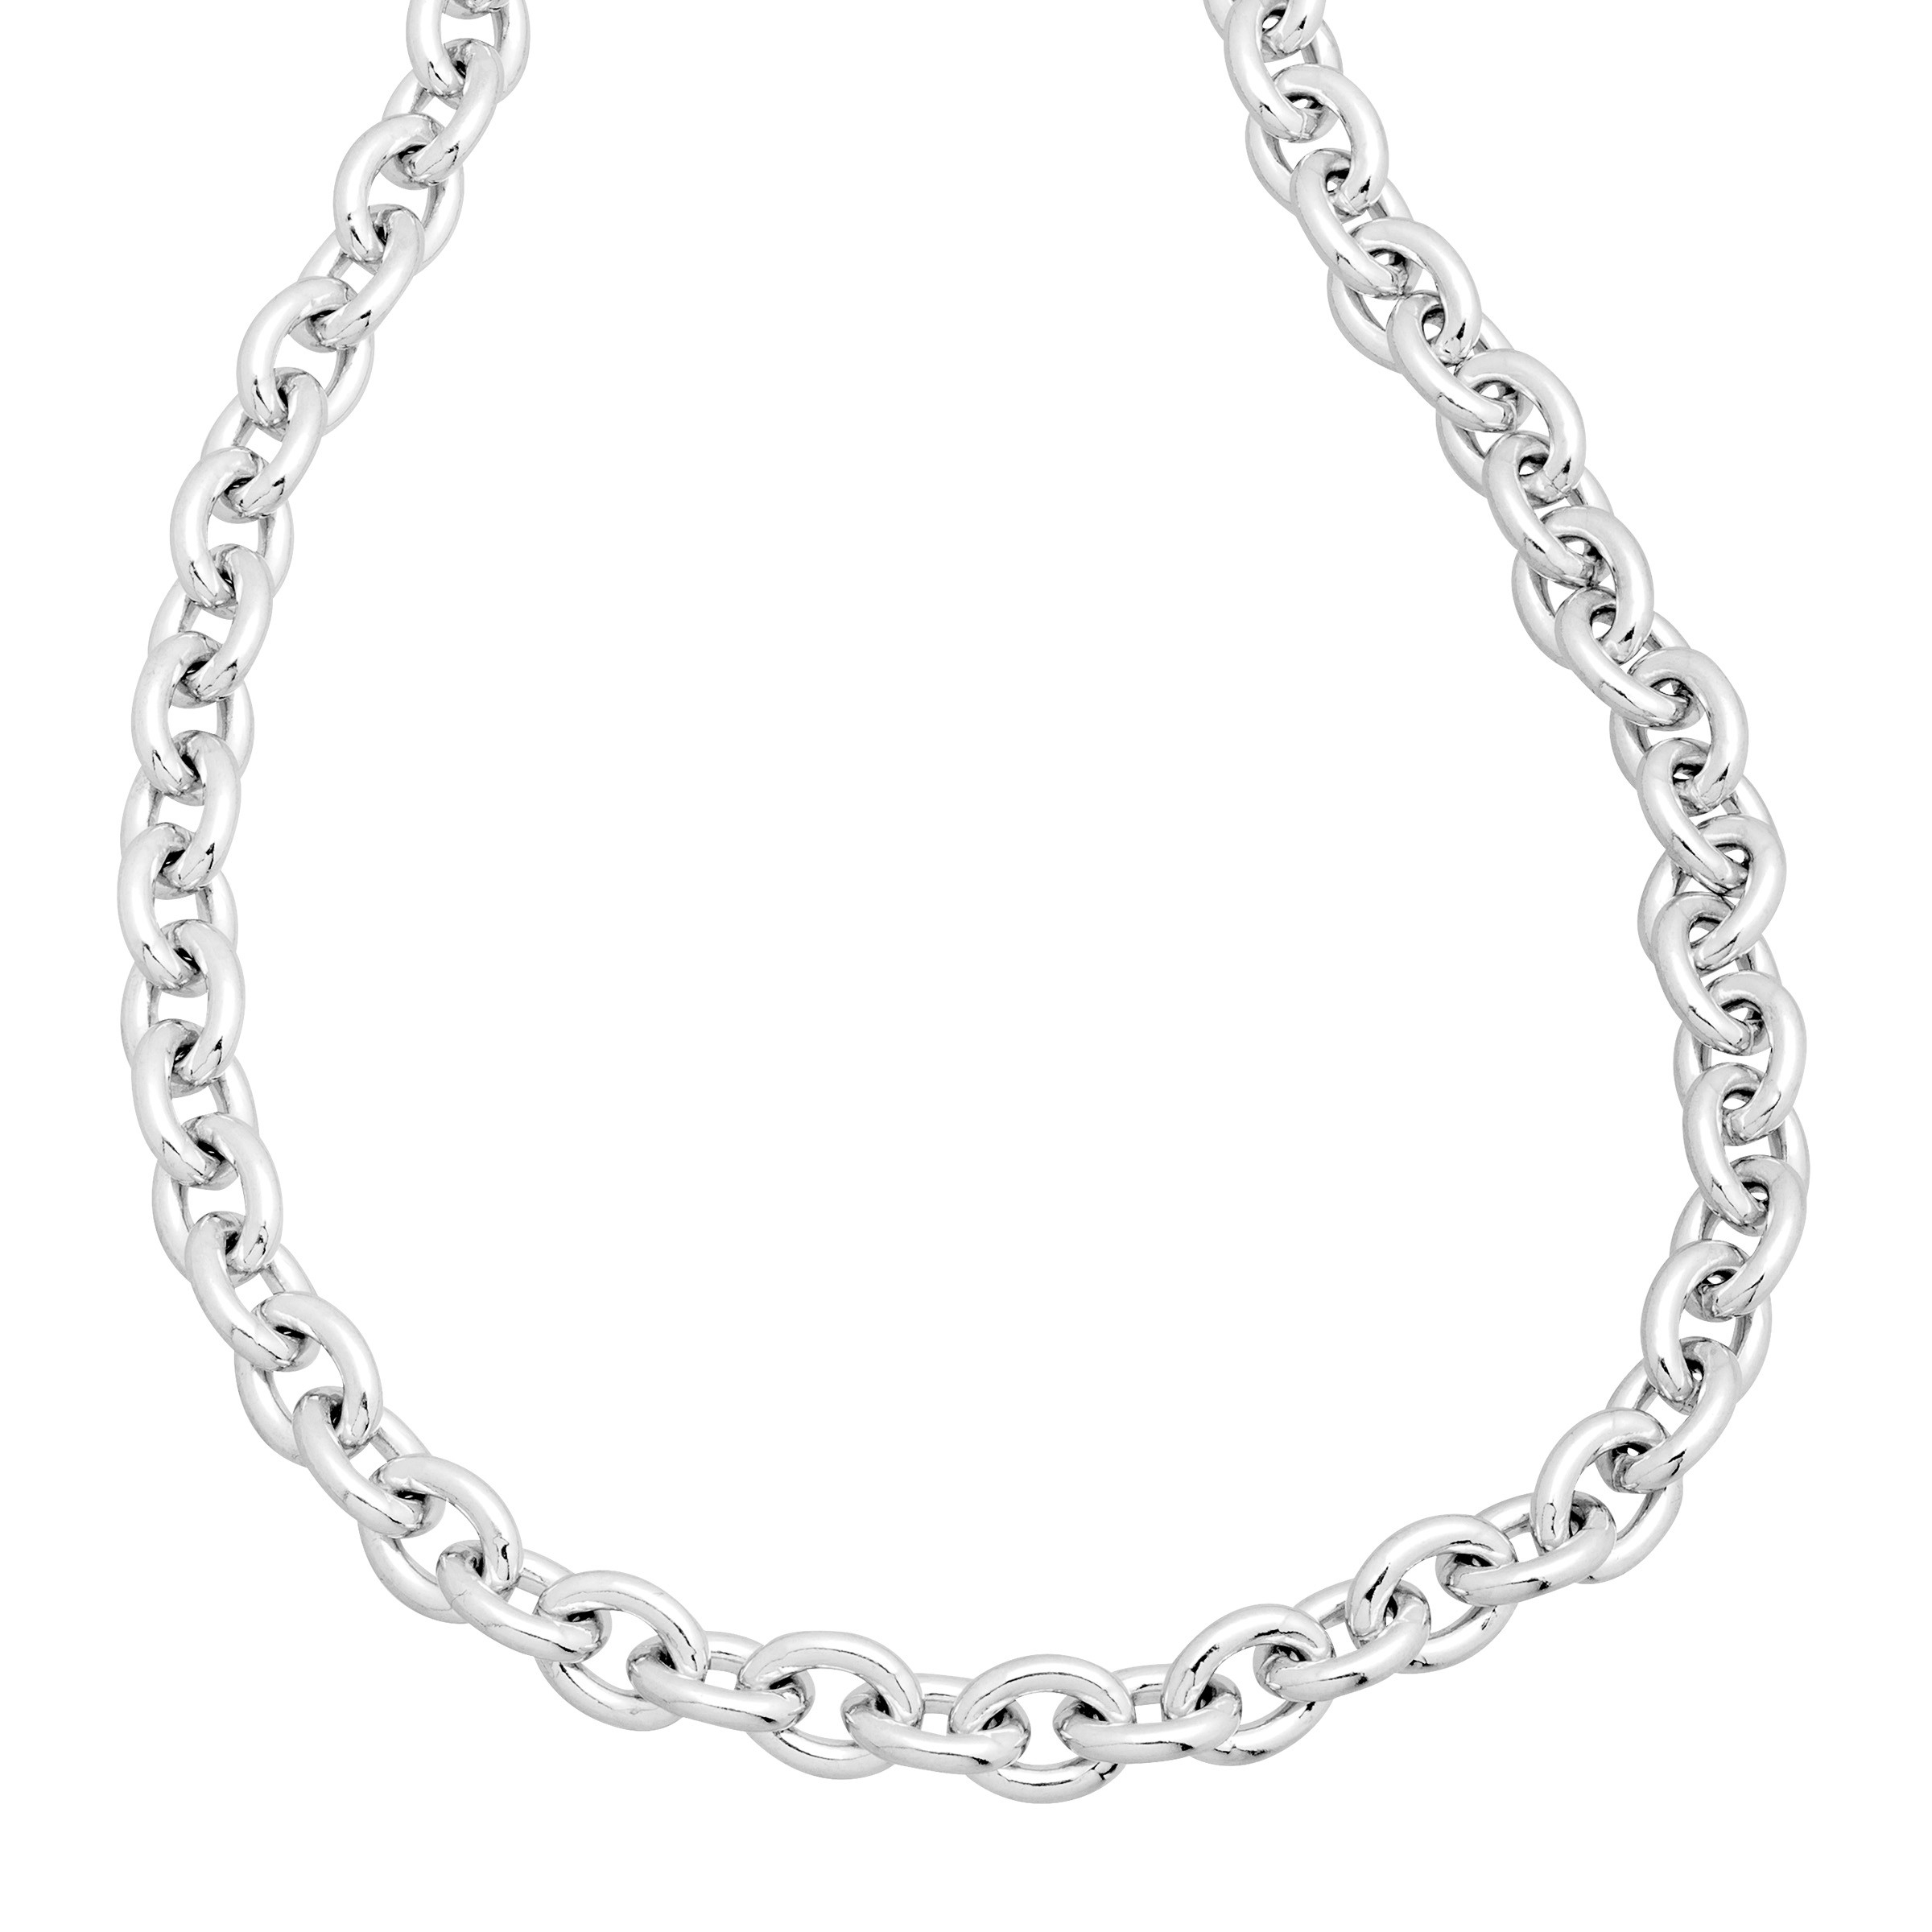 Details About Men's Cable Chain Necklace In Sterling Silver For Newest Cable Chain Necklaces (Gallery 1 of 25)